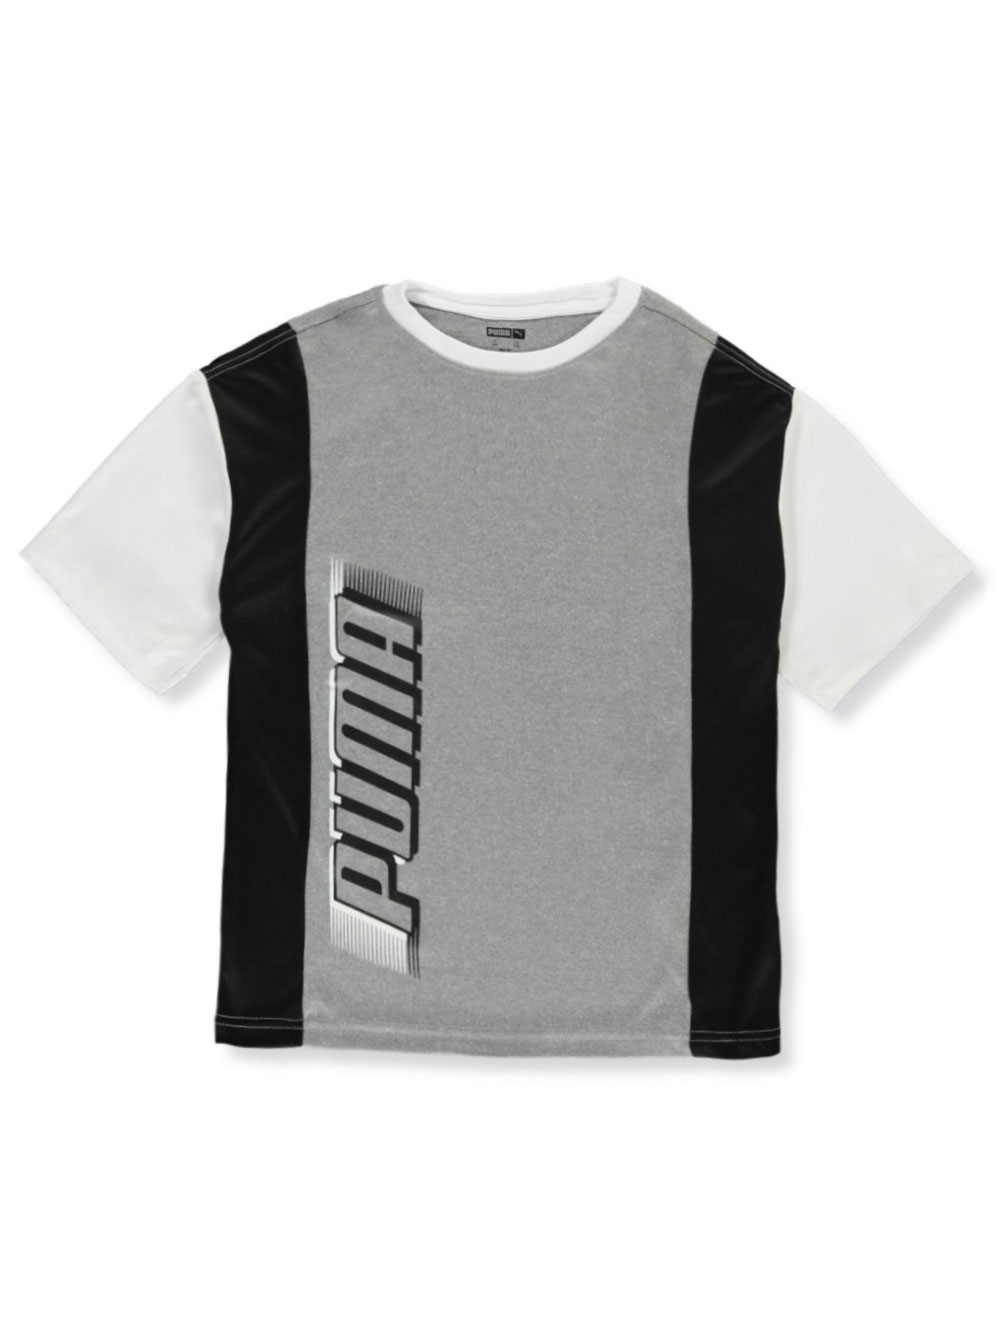 Boys Heather Gray and Black T-Shirts